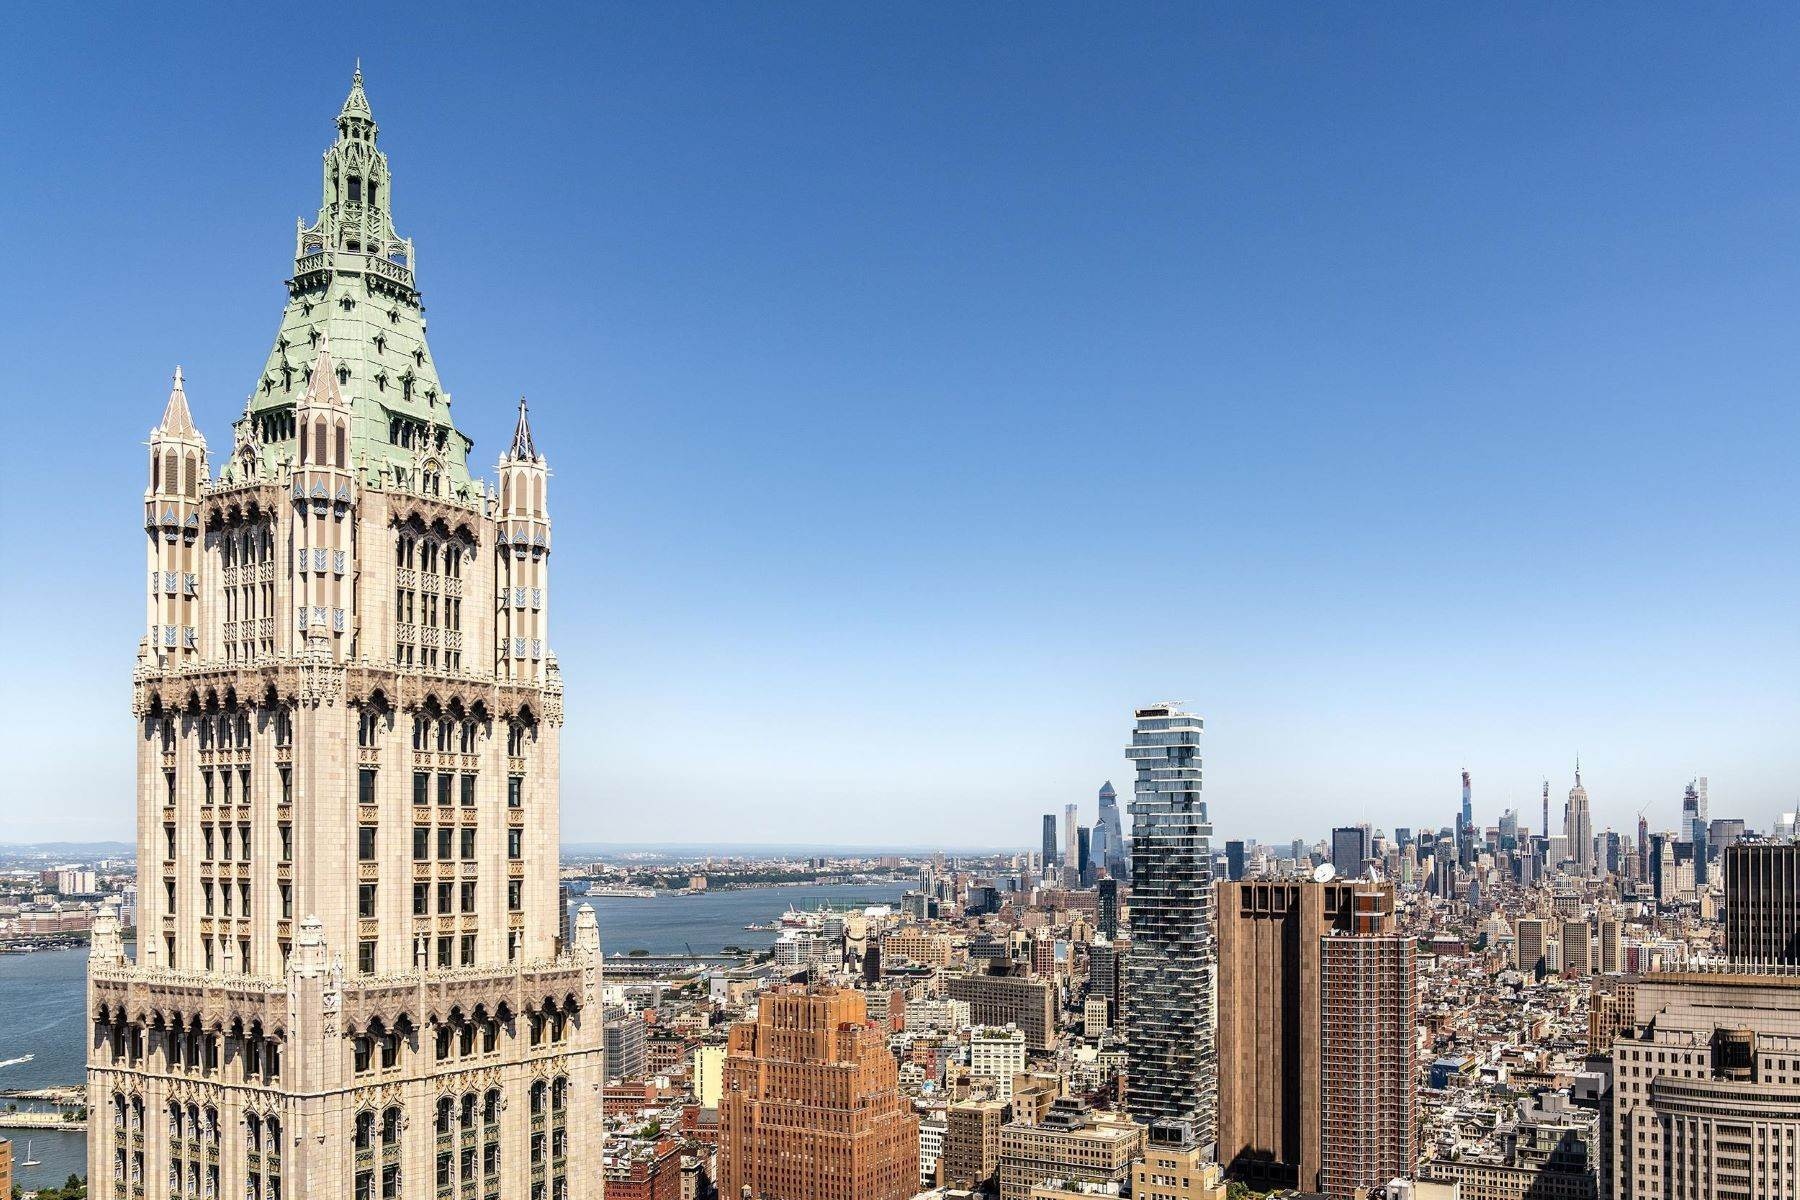 Condominiums للـ Sale في The Pinnacle Penthouse 2 Park Place, Pinnacle Penthouse New York, New York 10007 United States